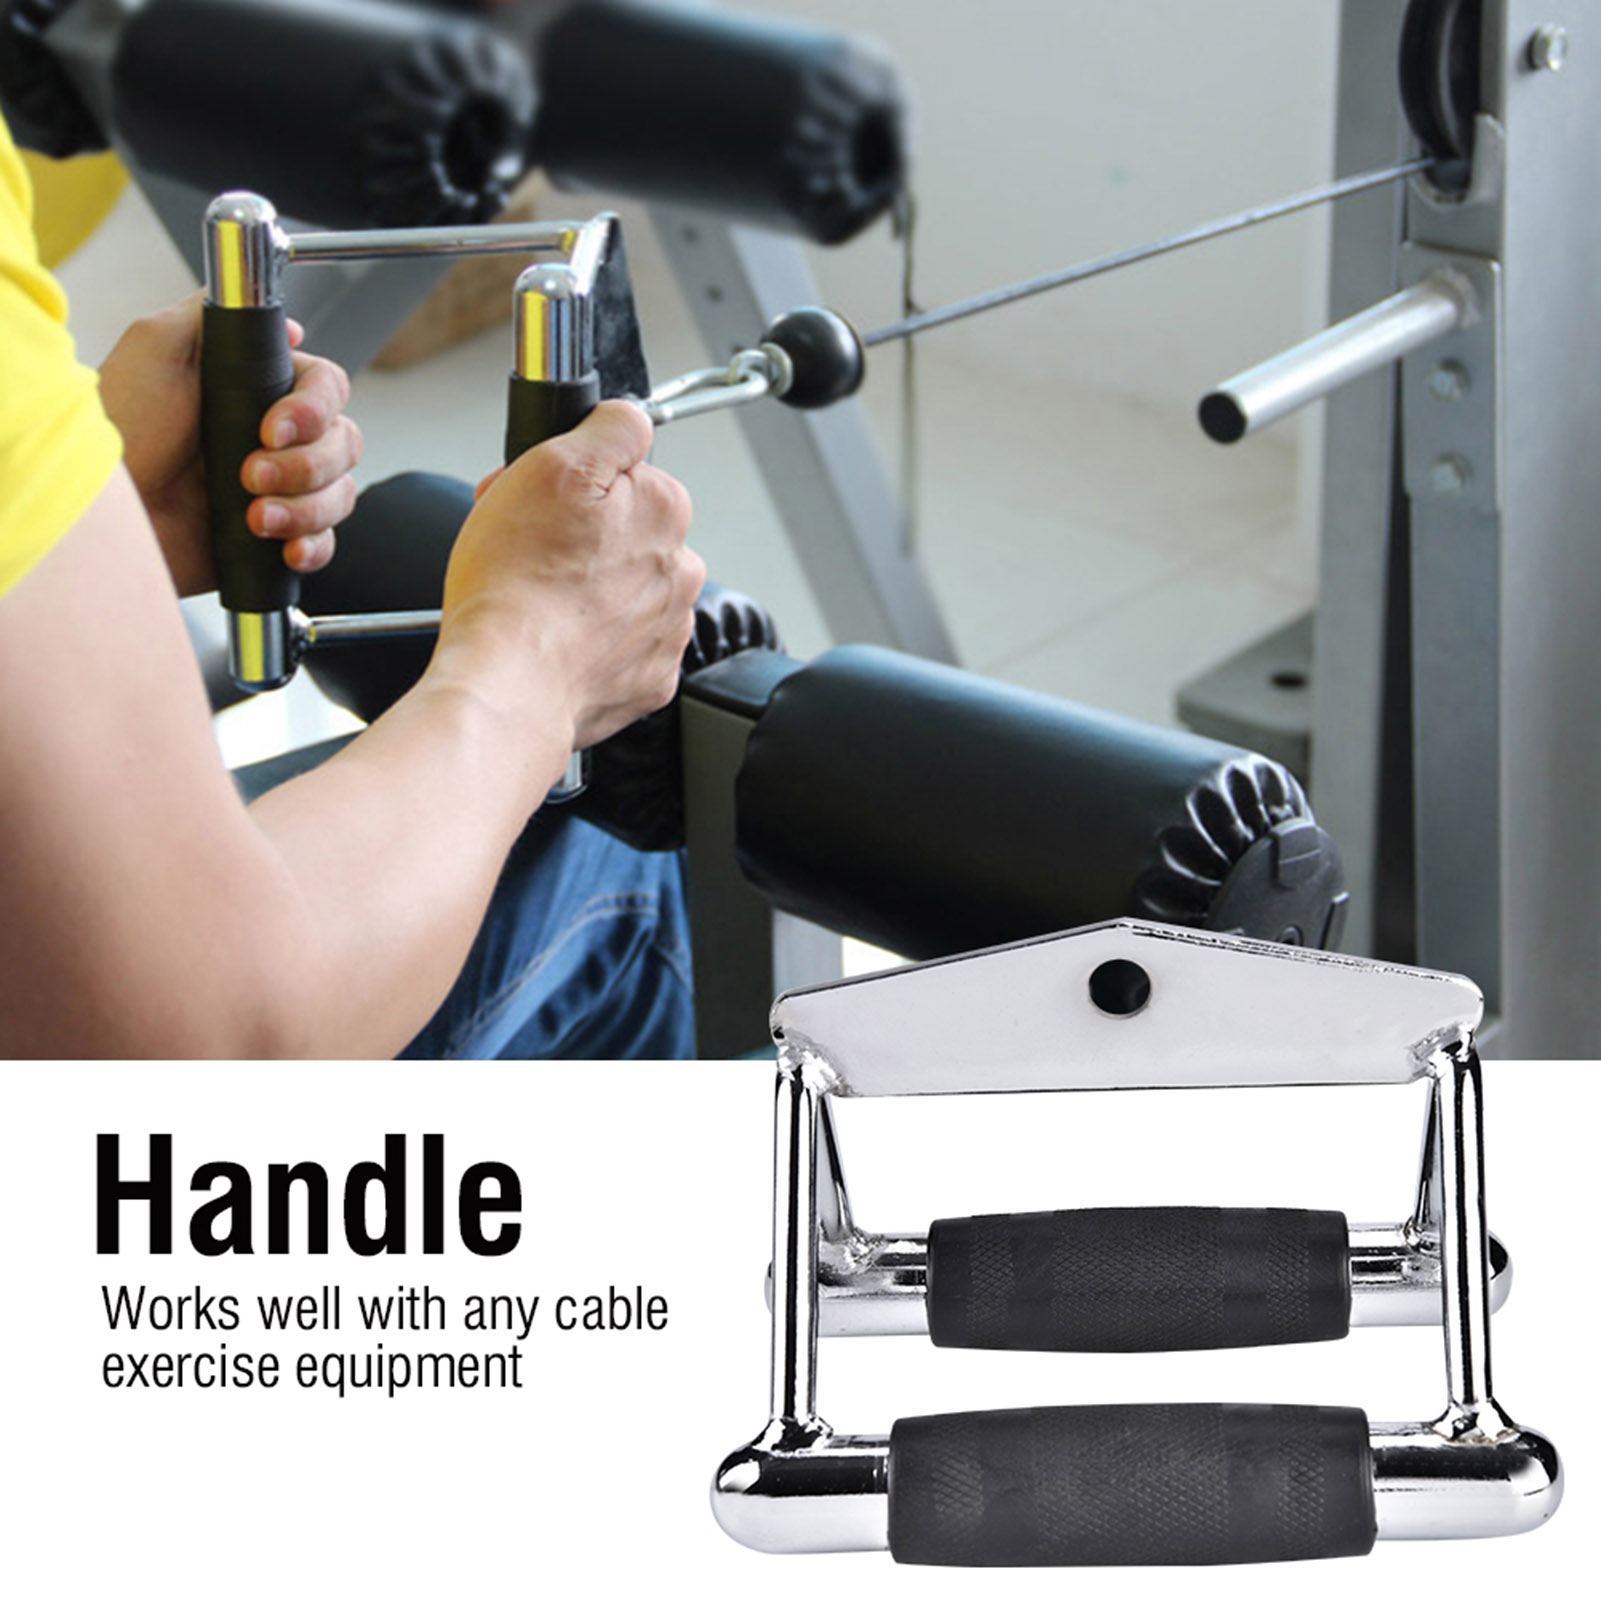 Home-Gym-Cable-Attachment-Exercise-Machine-Tricep-Rope-V-Pull-Up-Bar-D-Handle-US thumbnail 11